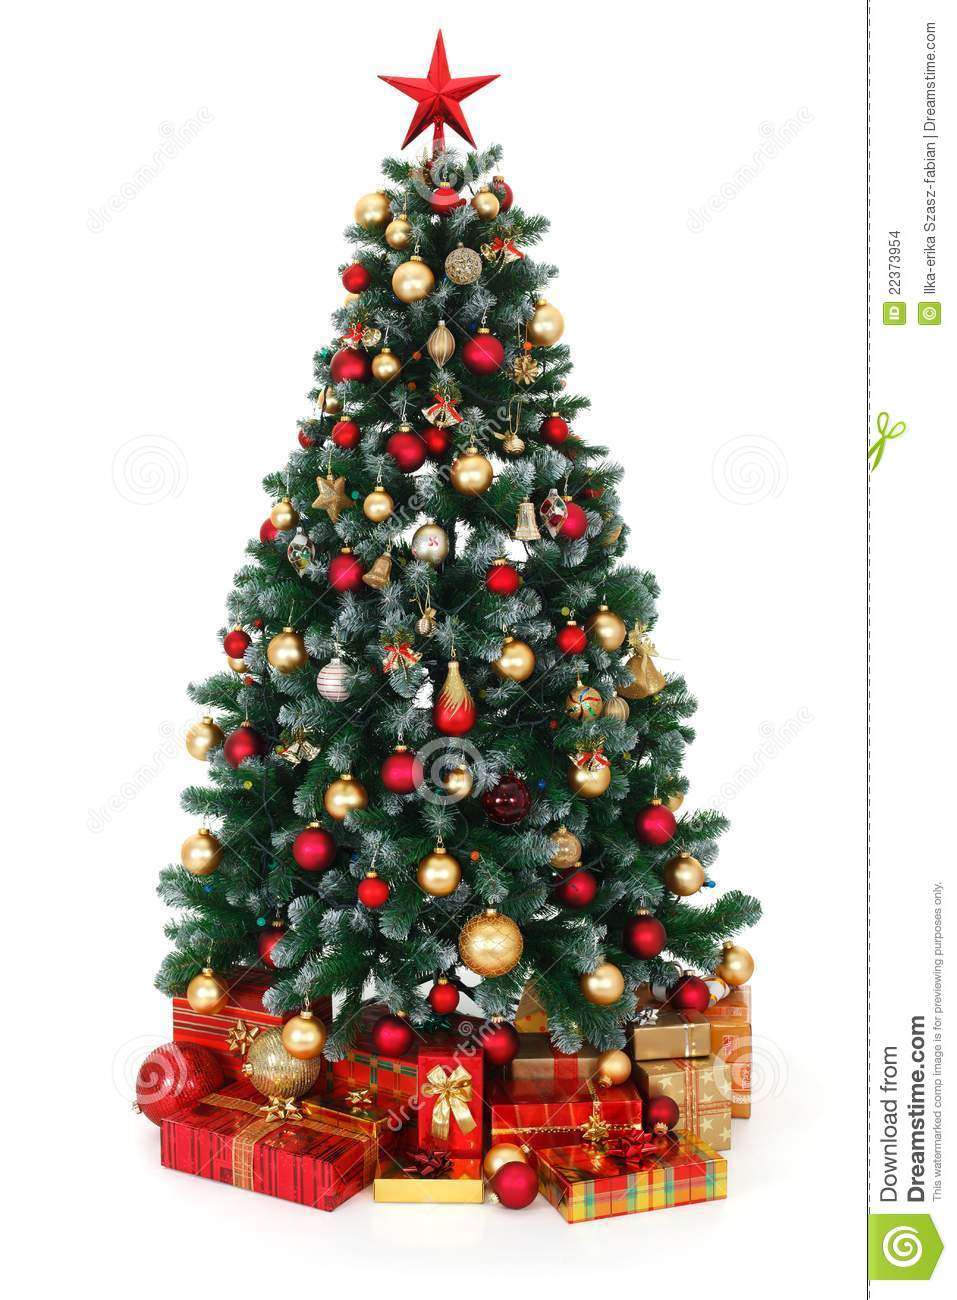 Christmas Tree Decorated.Green Decorated Christmas Tree And Presents Stock Photo